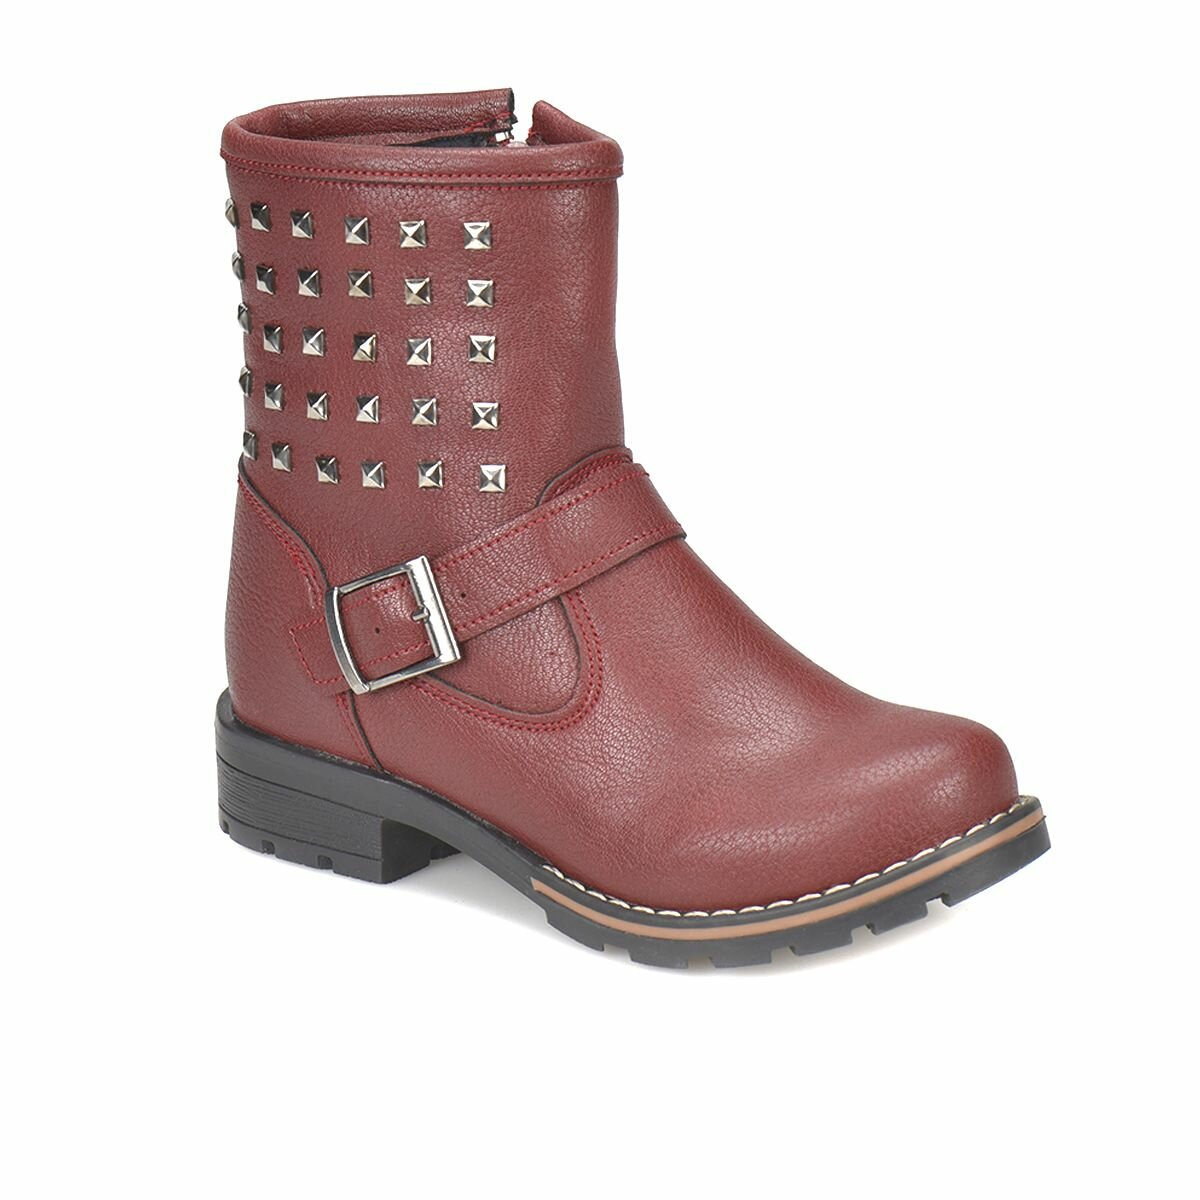 FLO NINA-3 Burgundy Female Child Boots PINKSTEP